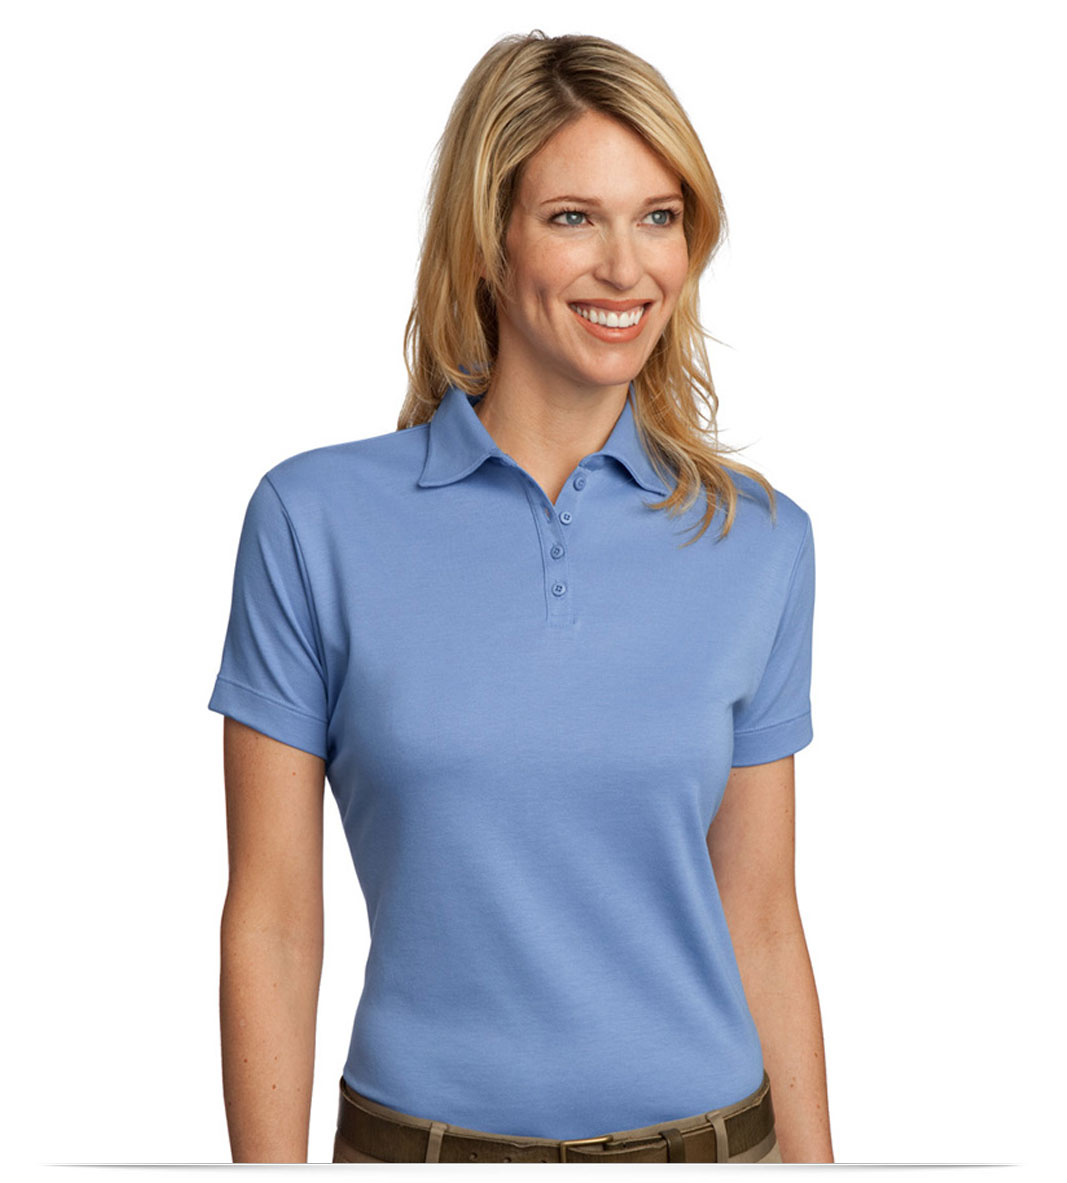 Design Embroidered Custom Ladies Pima Cotton Golf Shirt Online